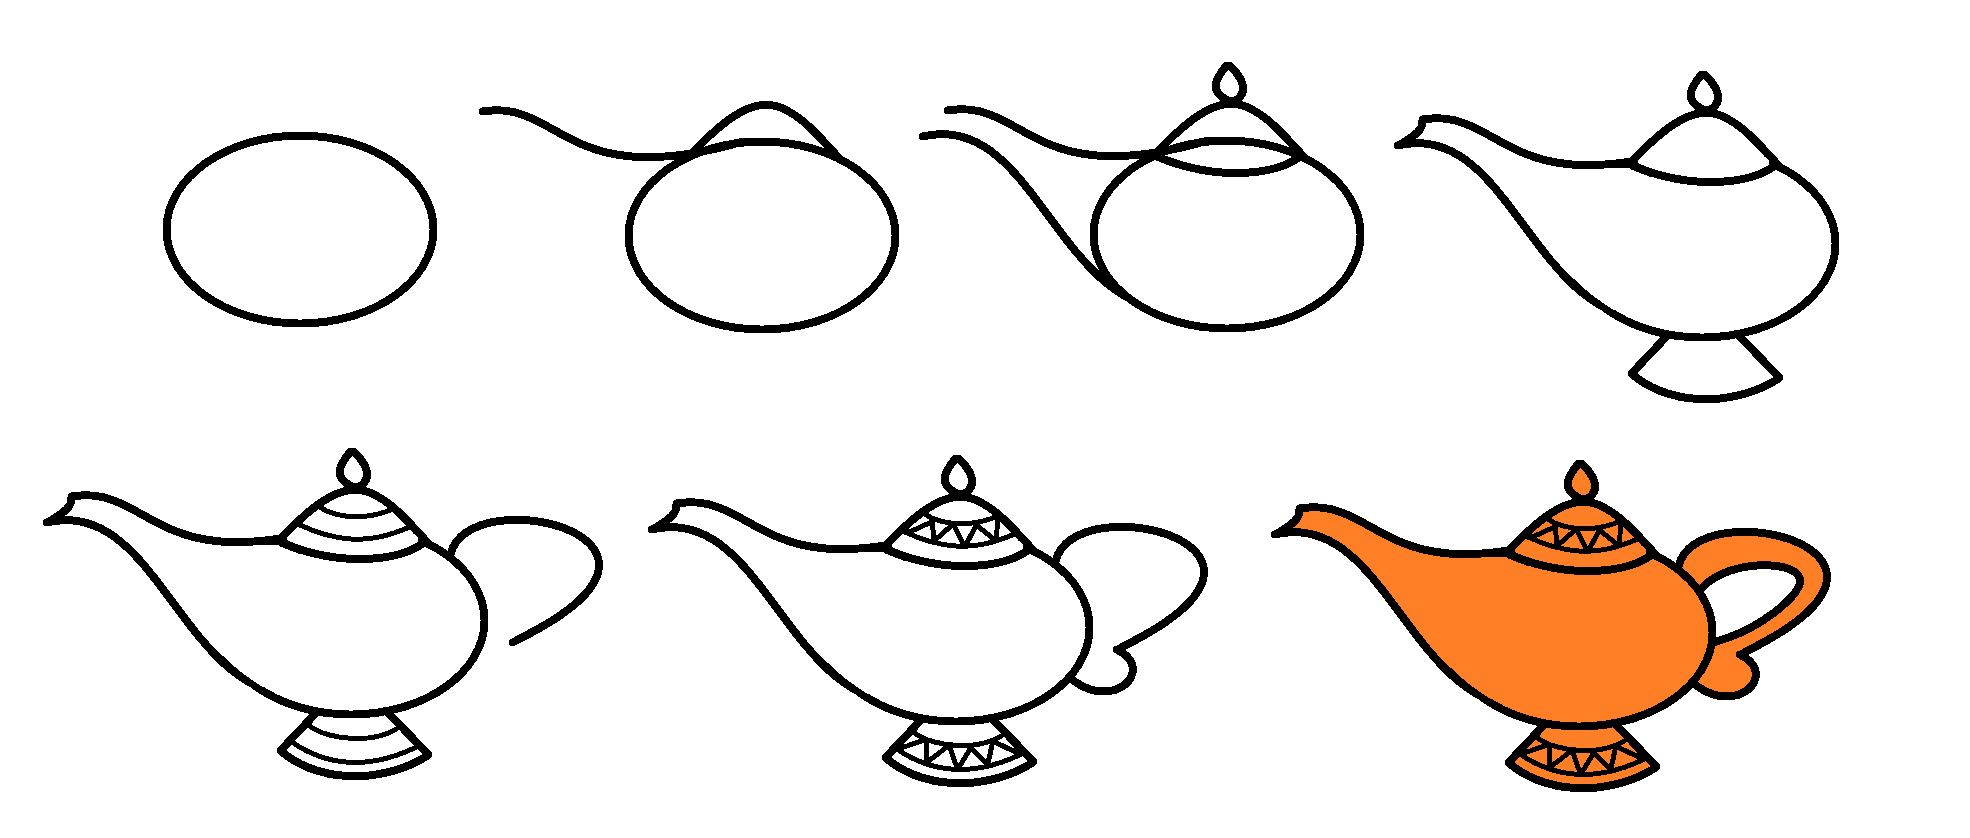 Step by step for drawing the genie lamp from the movie aladdin